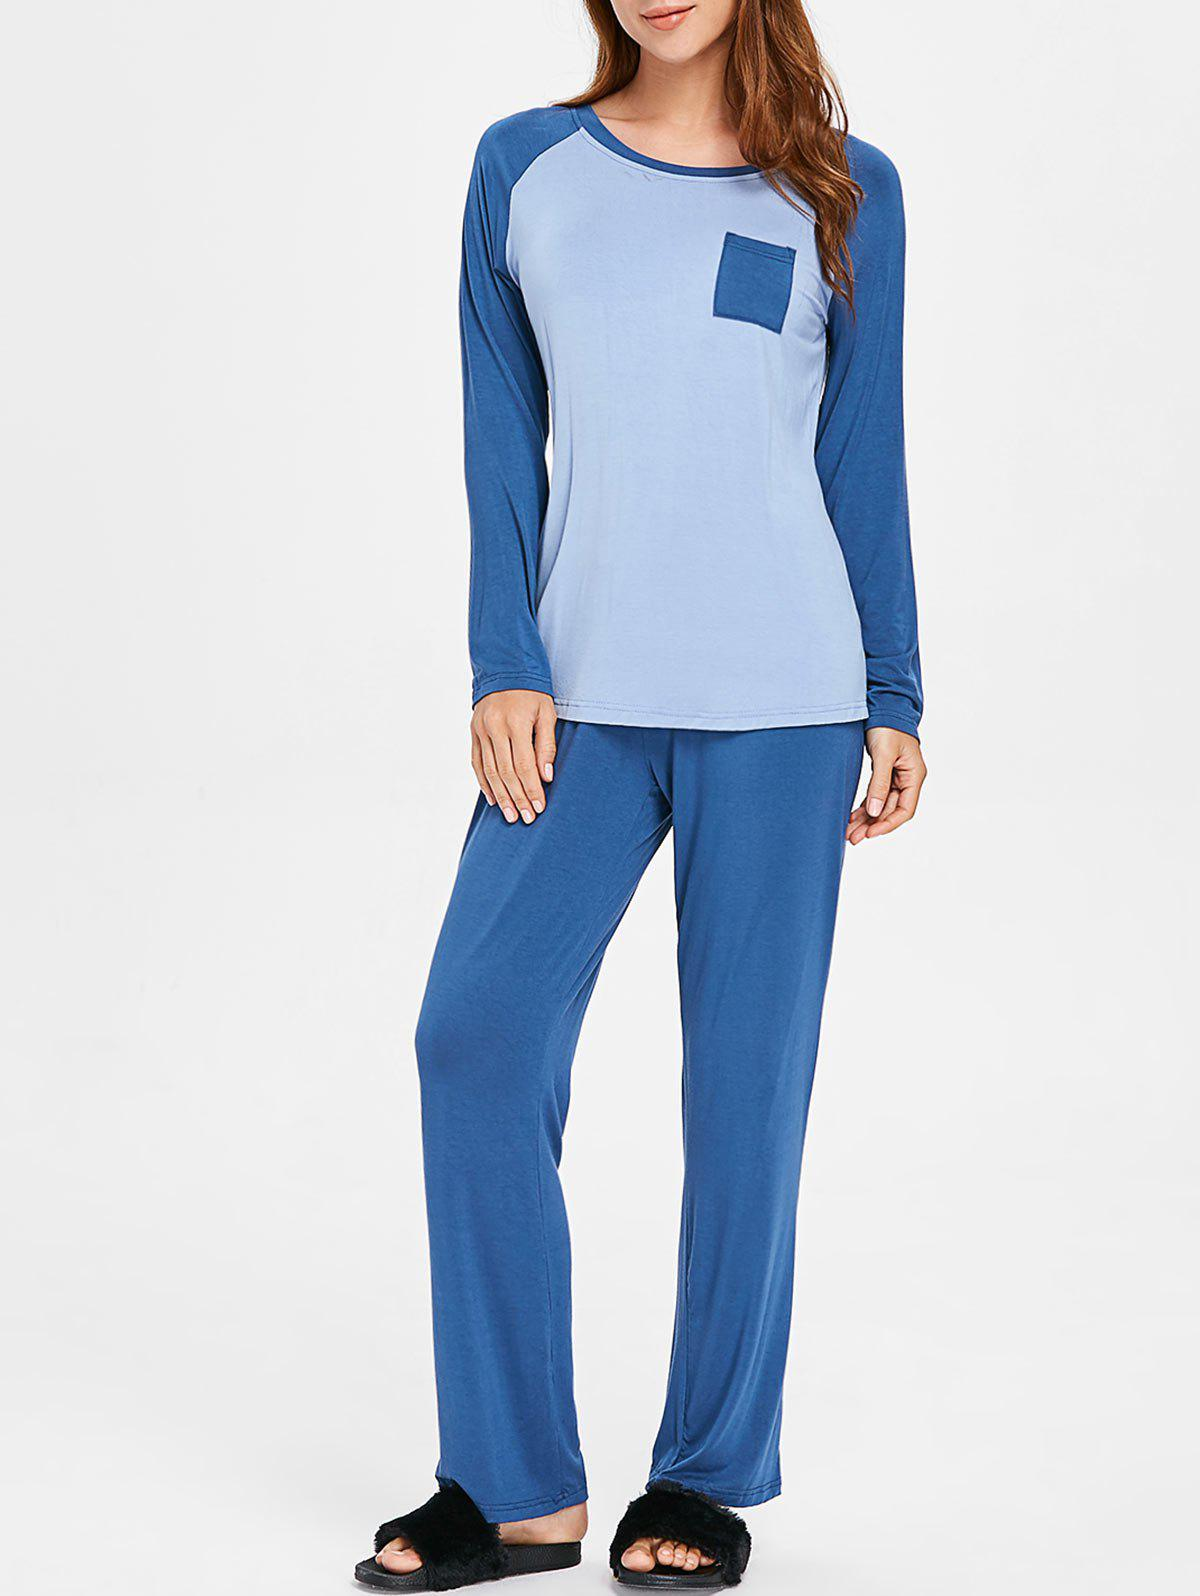 Two Tone Long Sleeves Pocket Pajamas Suit - BLUE GRAY L